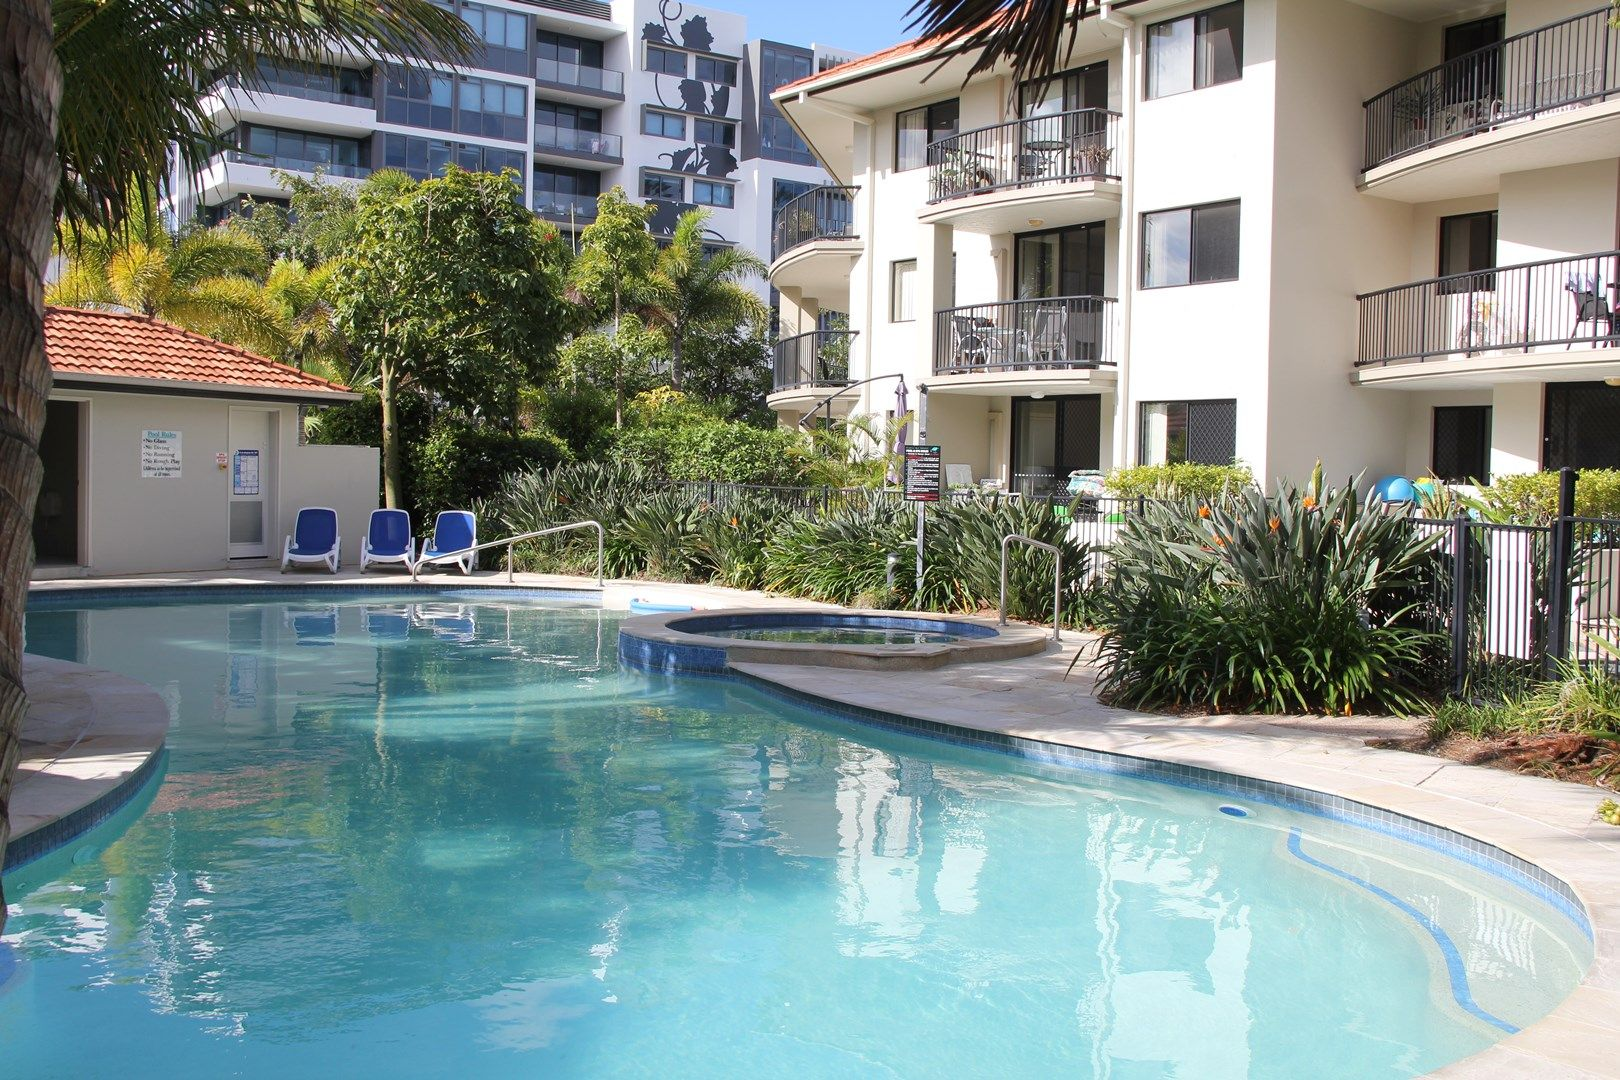 Unit 29/14-16 Markeri St, Mermaid Beach QLD 4218, Image 2